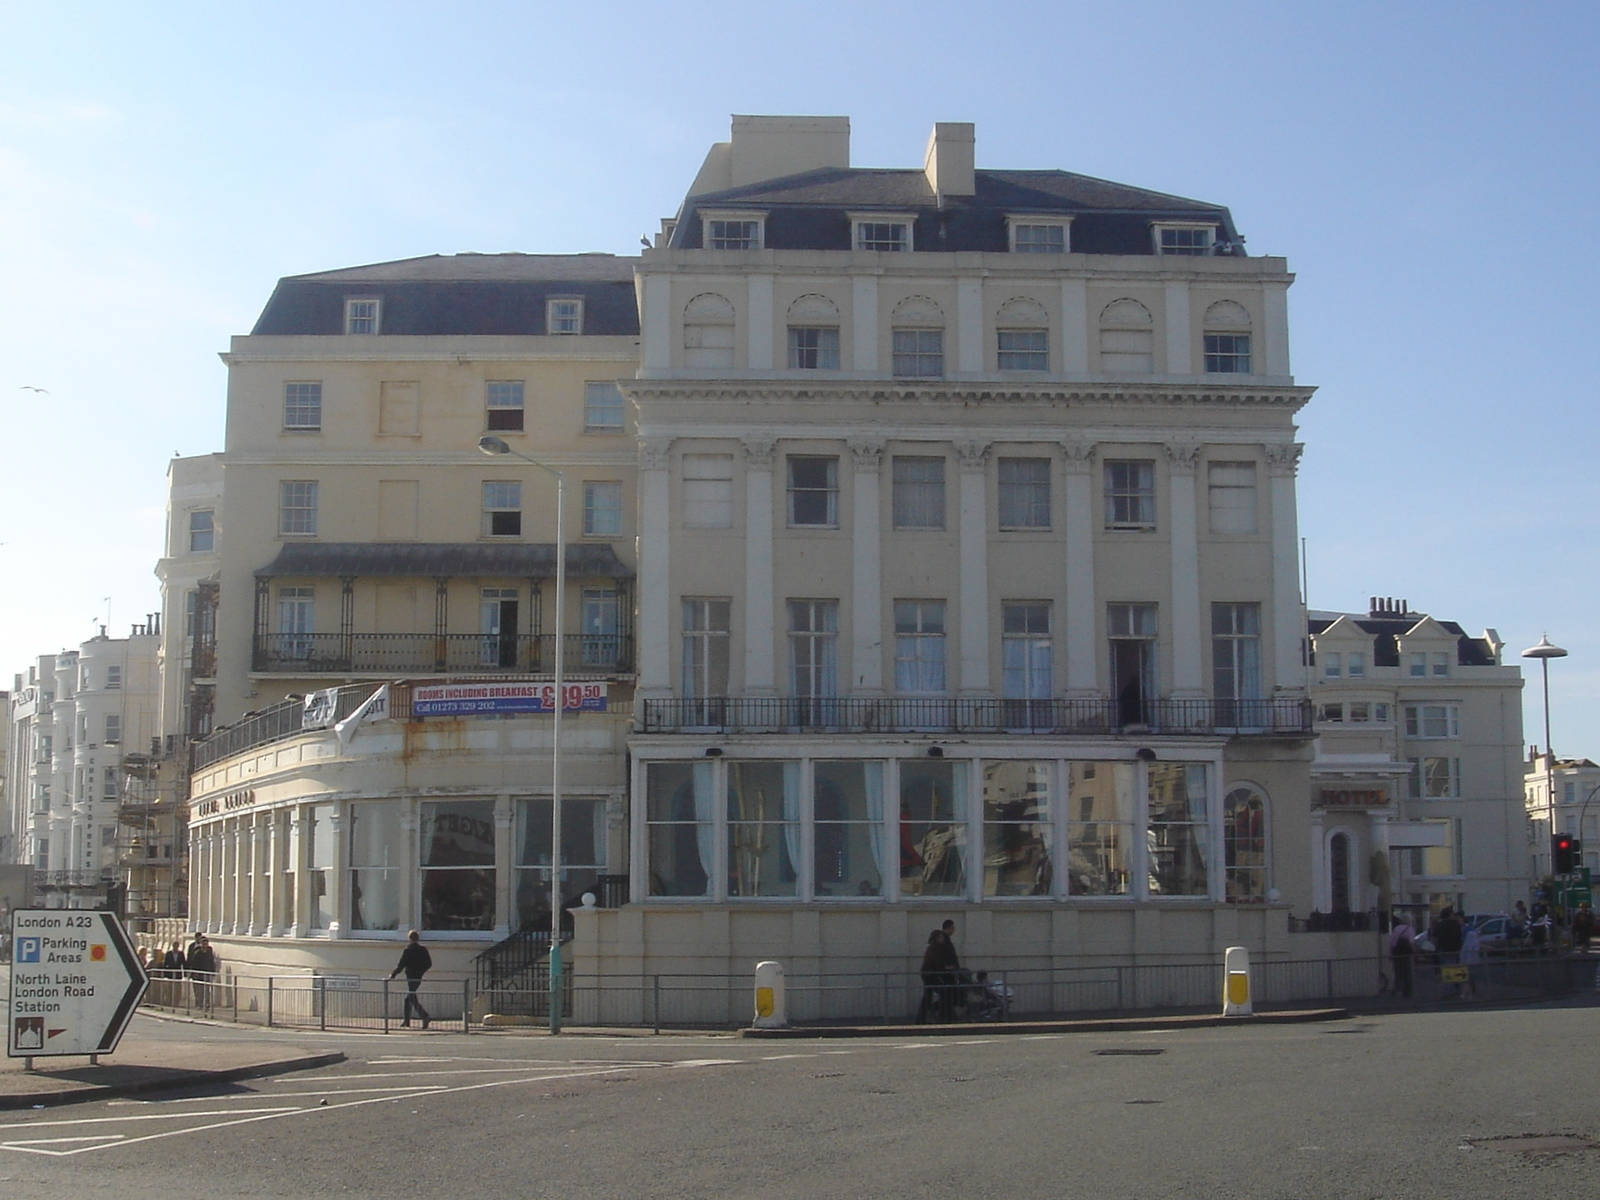 The Royal Albion Hotel Brighton